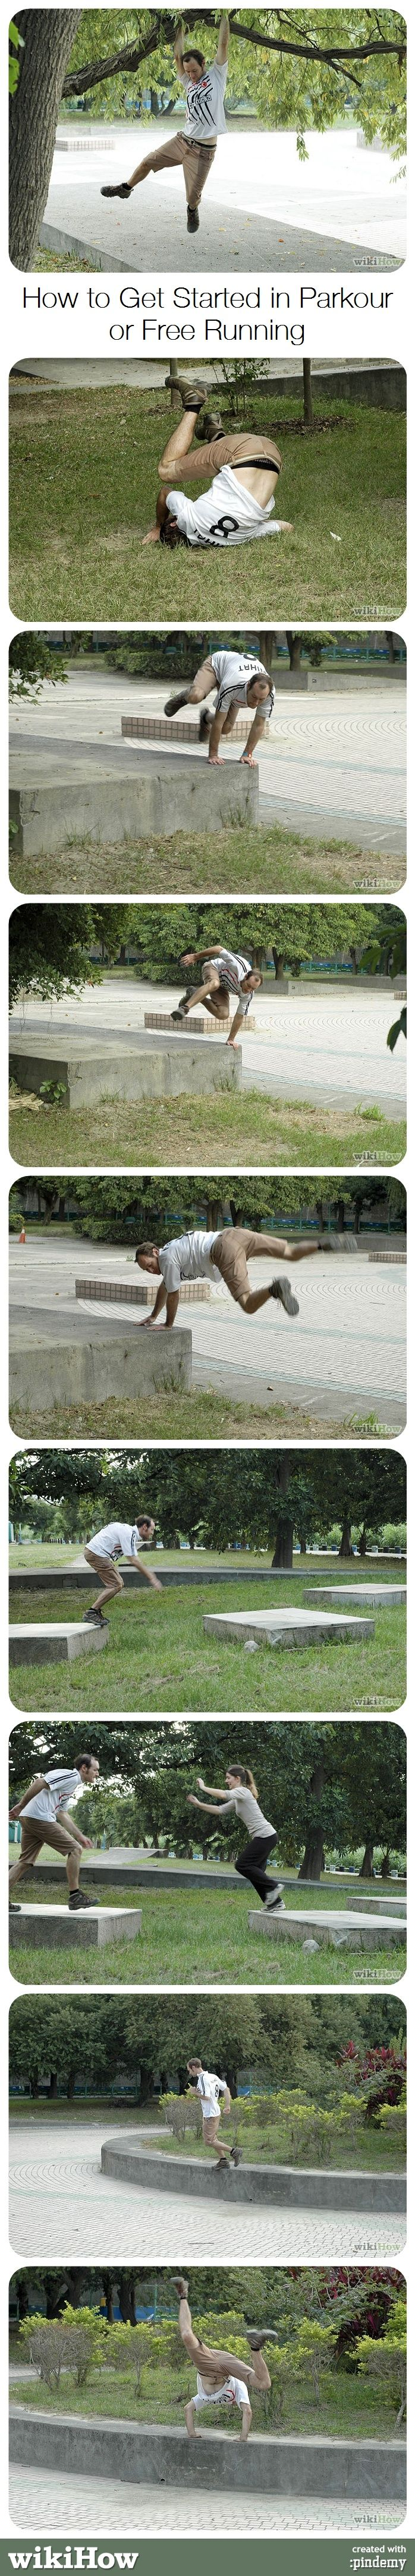 How to Get Started in Parkour or Free Running #sport #philosophy